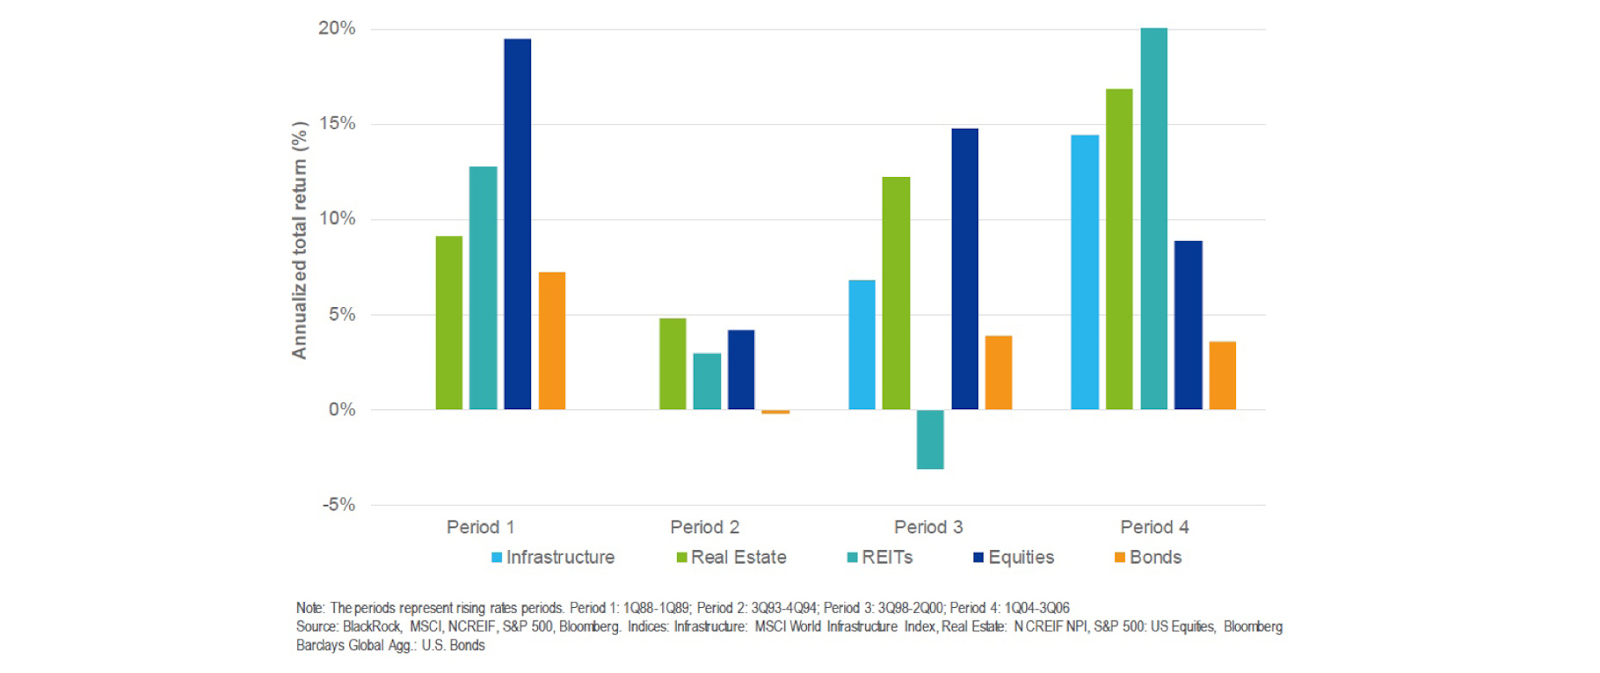 Annualised Total Returns in Different Asset Classes